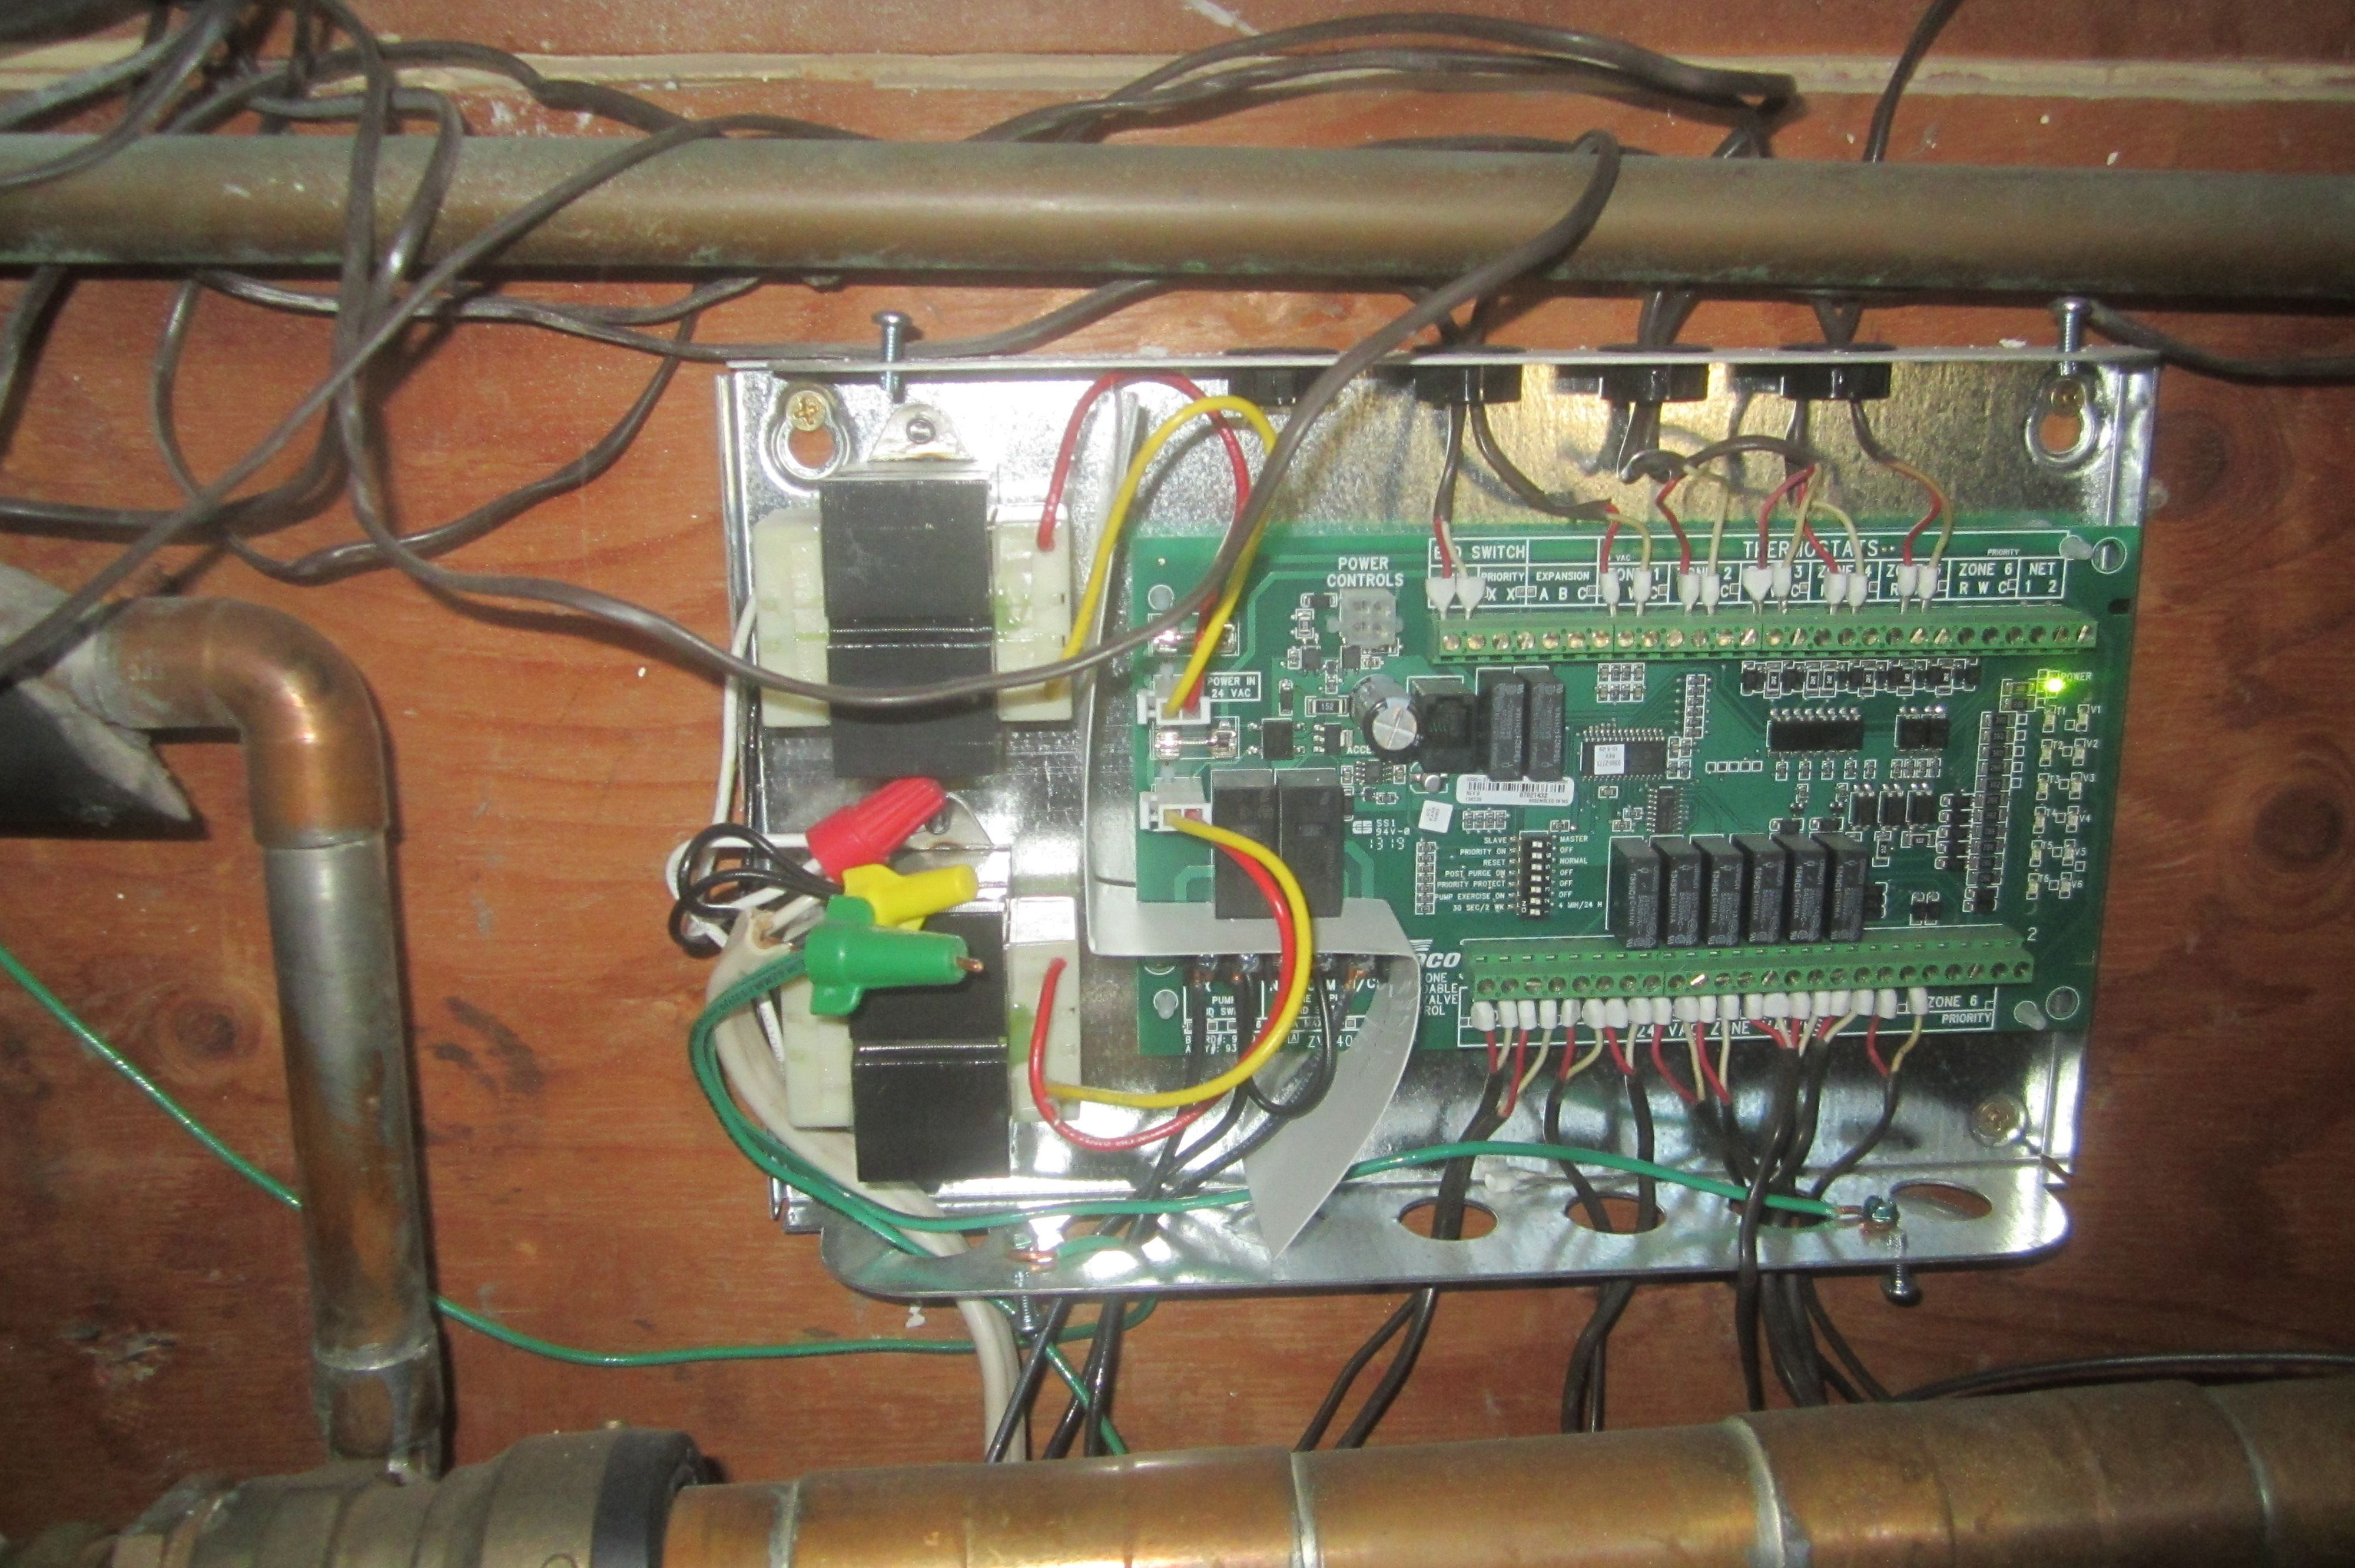 Zone Control Wiring Simple Diagram Taco 3 Controller Revised Twinsprings Research Institute 4000 2664 Pixels